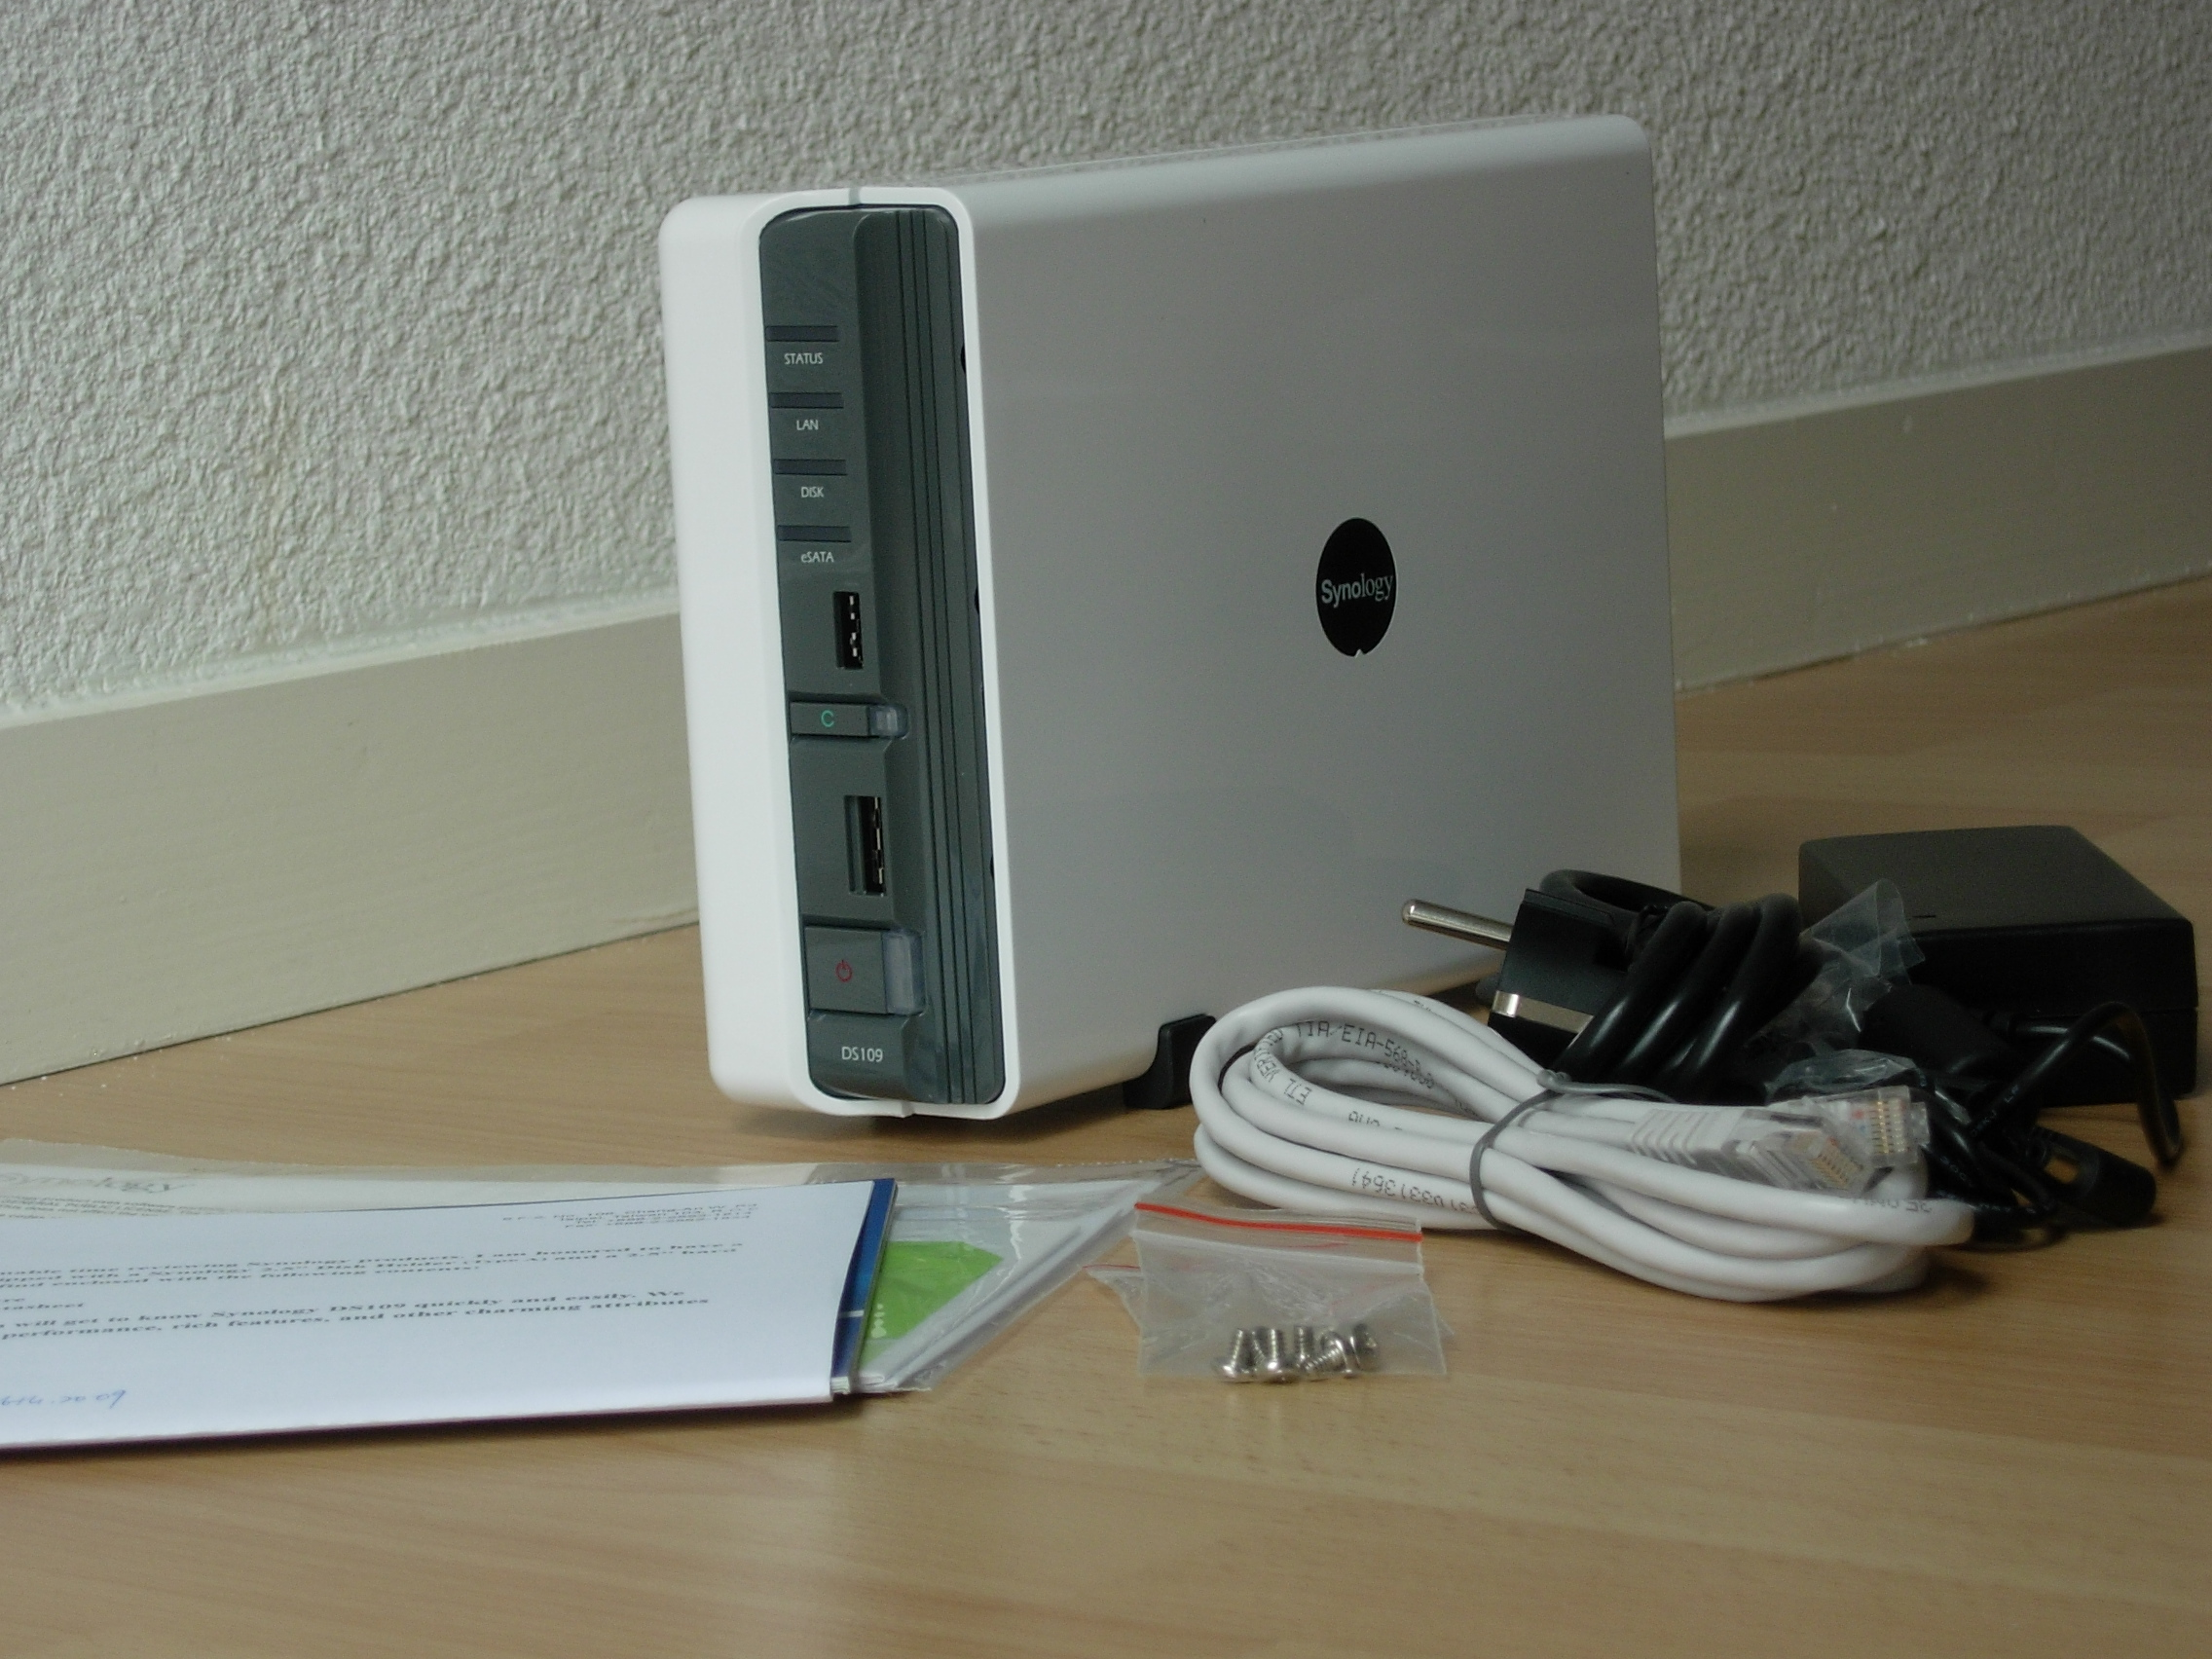 felinewave  u00bb test du nas ds109 synology  u2013 unboxing